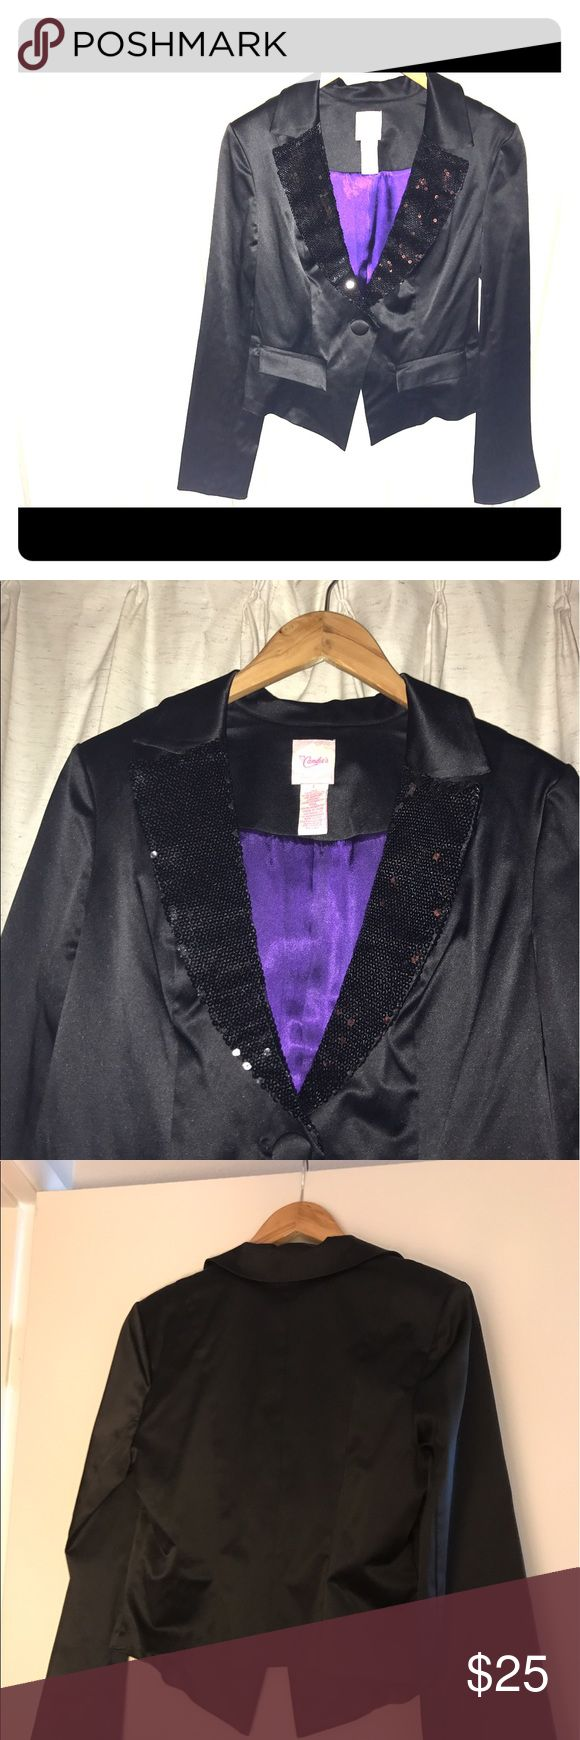 Selling this Candie's Women's Tuxedo Jacket size L on Poshmark! My username is: itsjustsoup. #shopmycloset #poshmark #fashion #shopping #style #forsale #Candie's #Jackets & Blazers